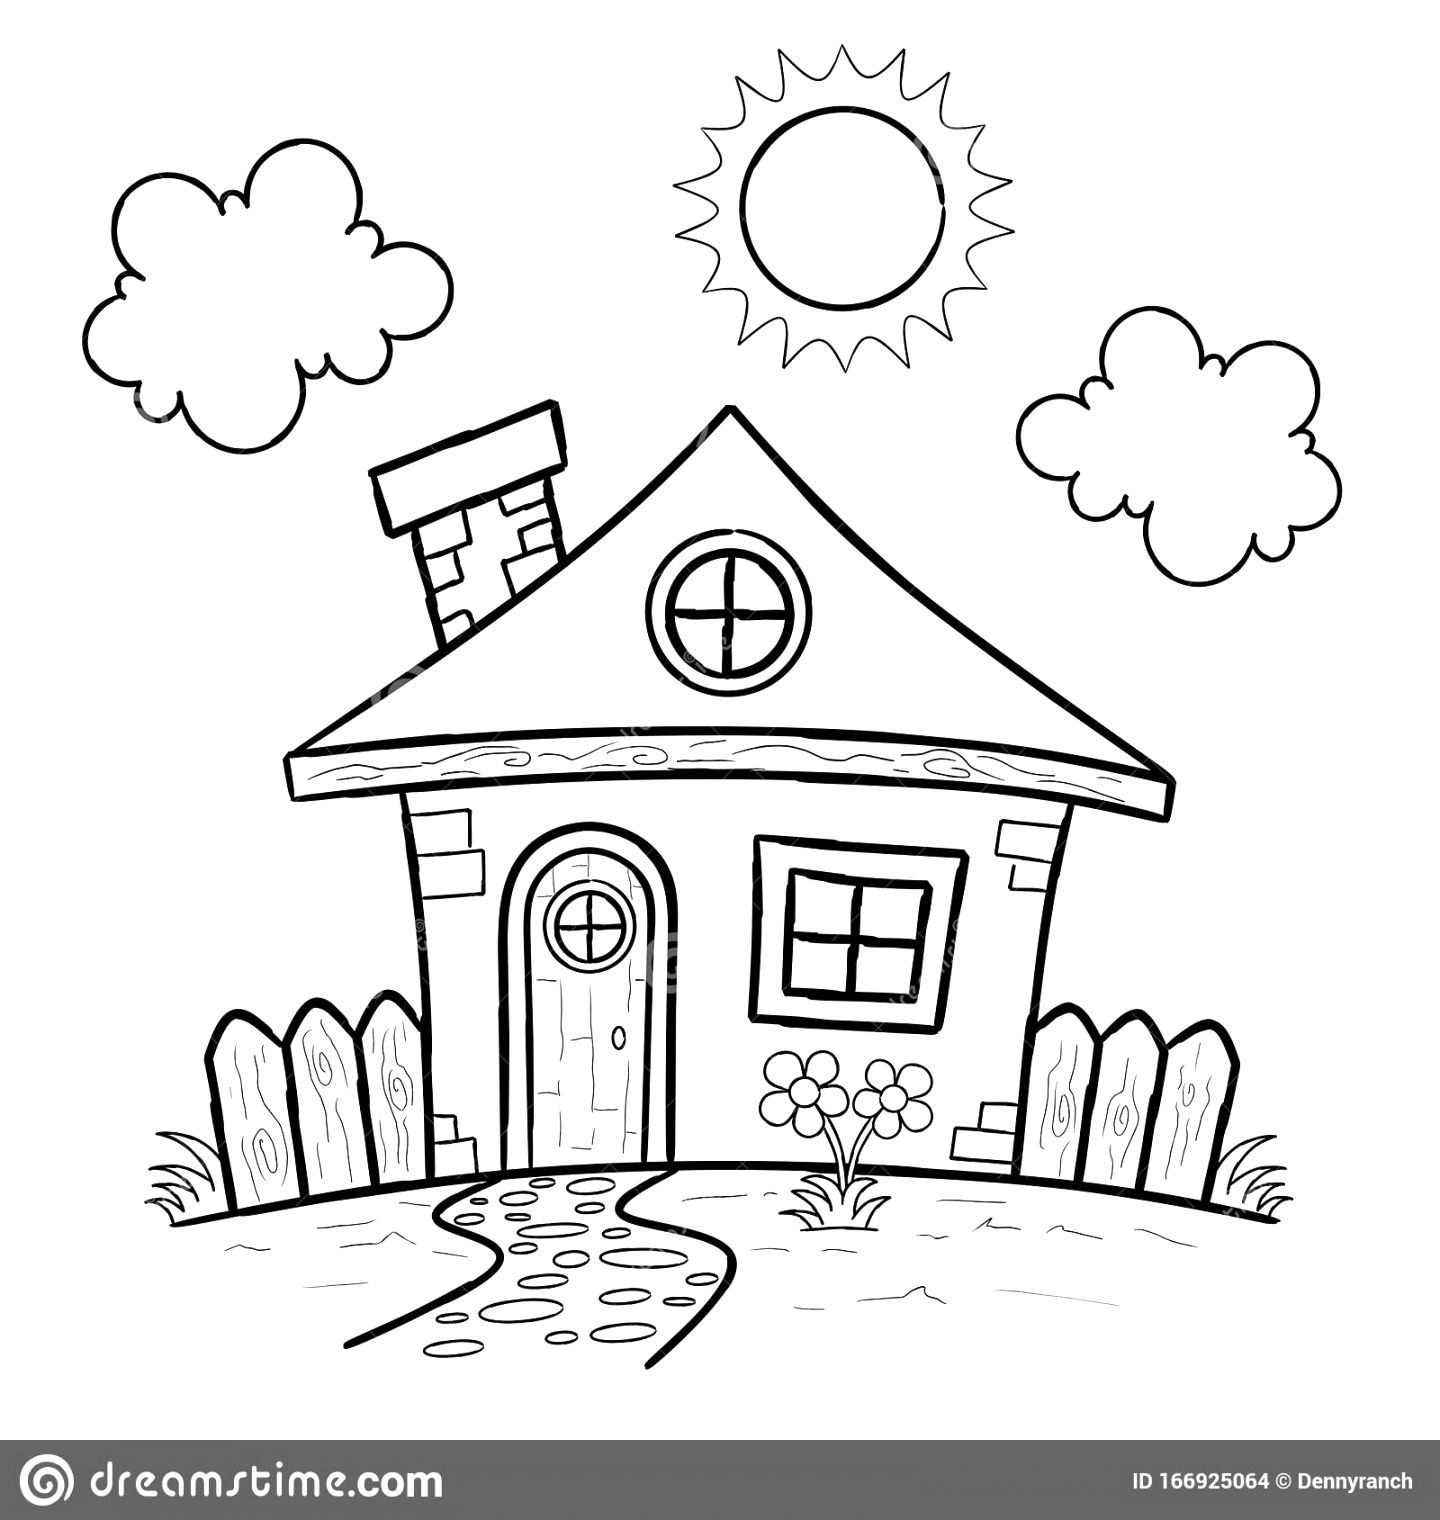 The best house colouring pictures pdf download